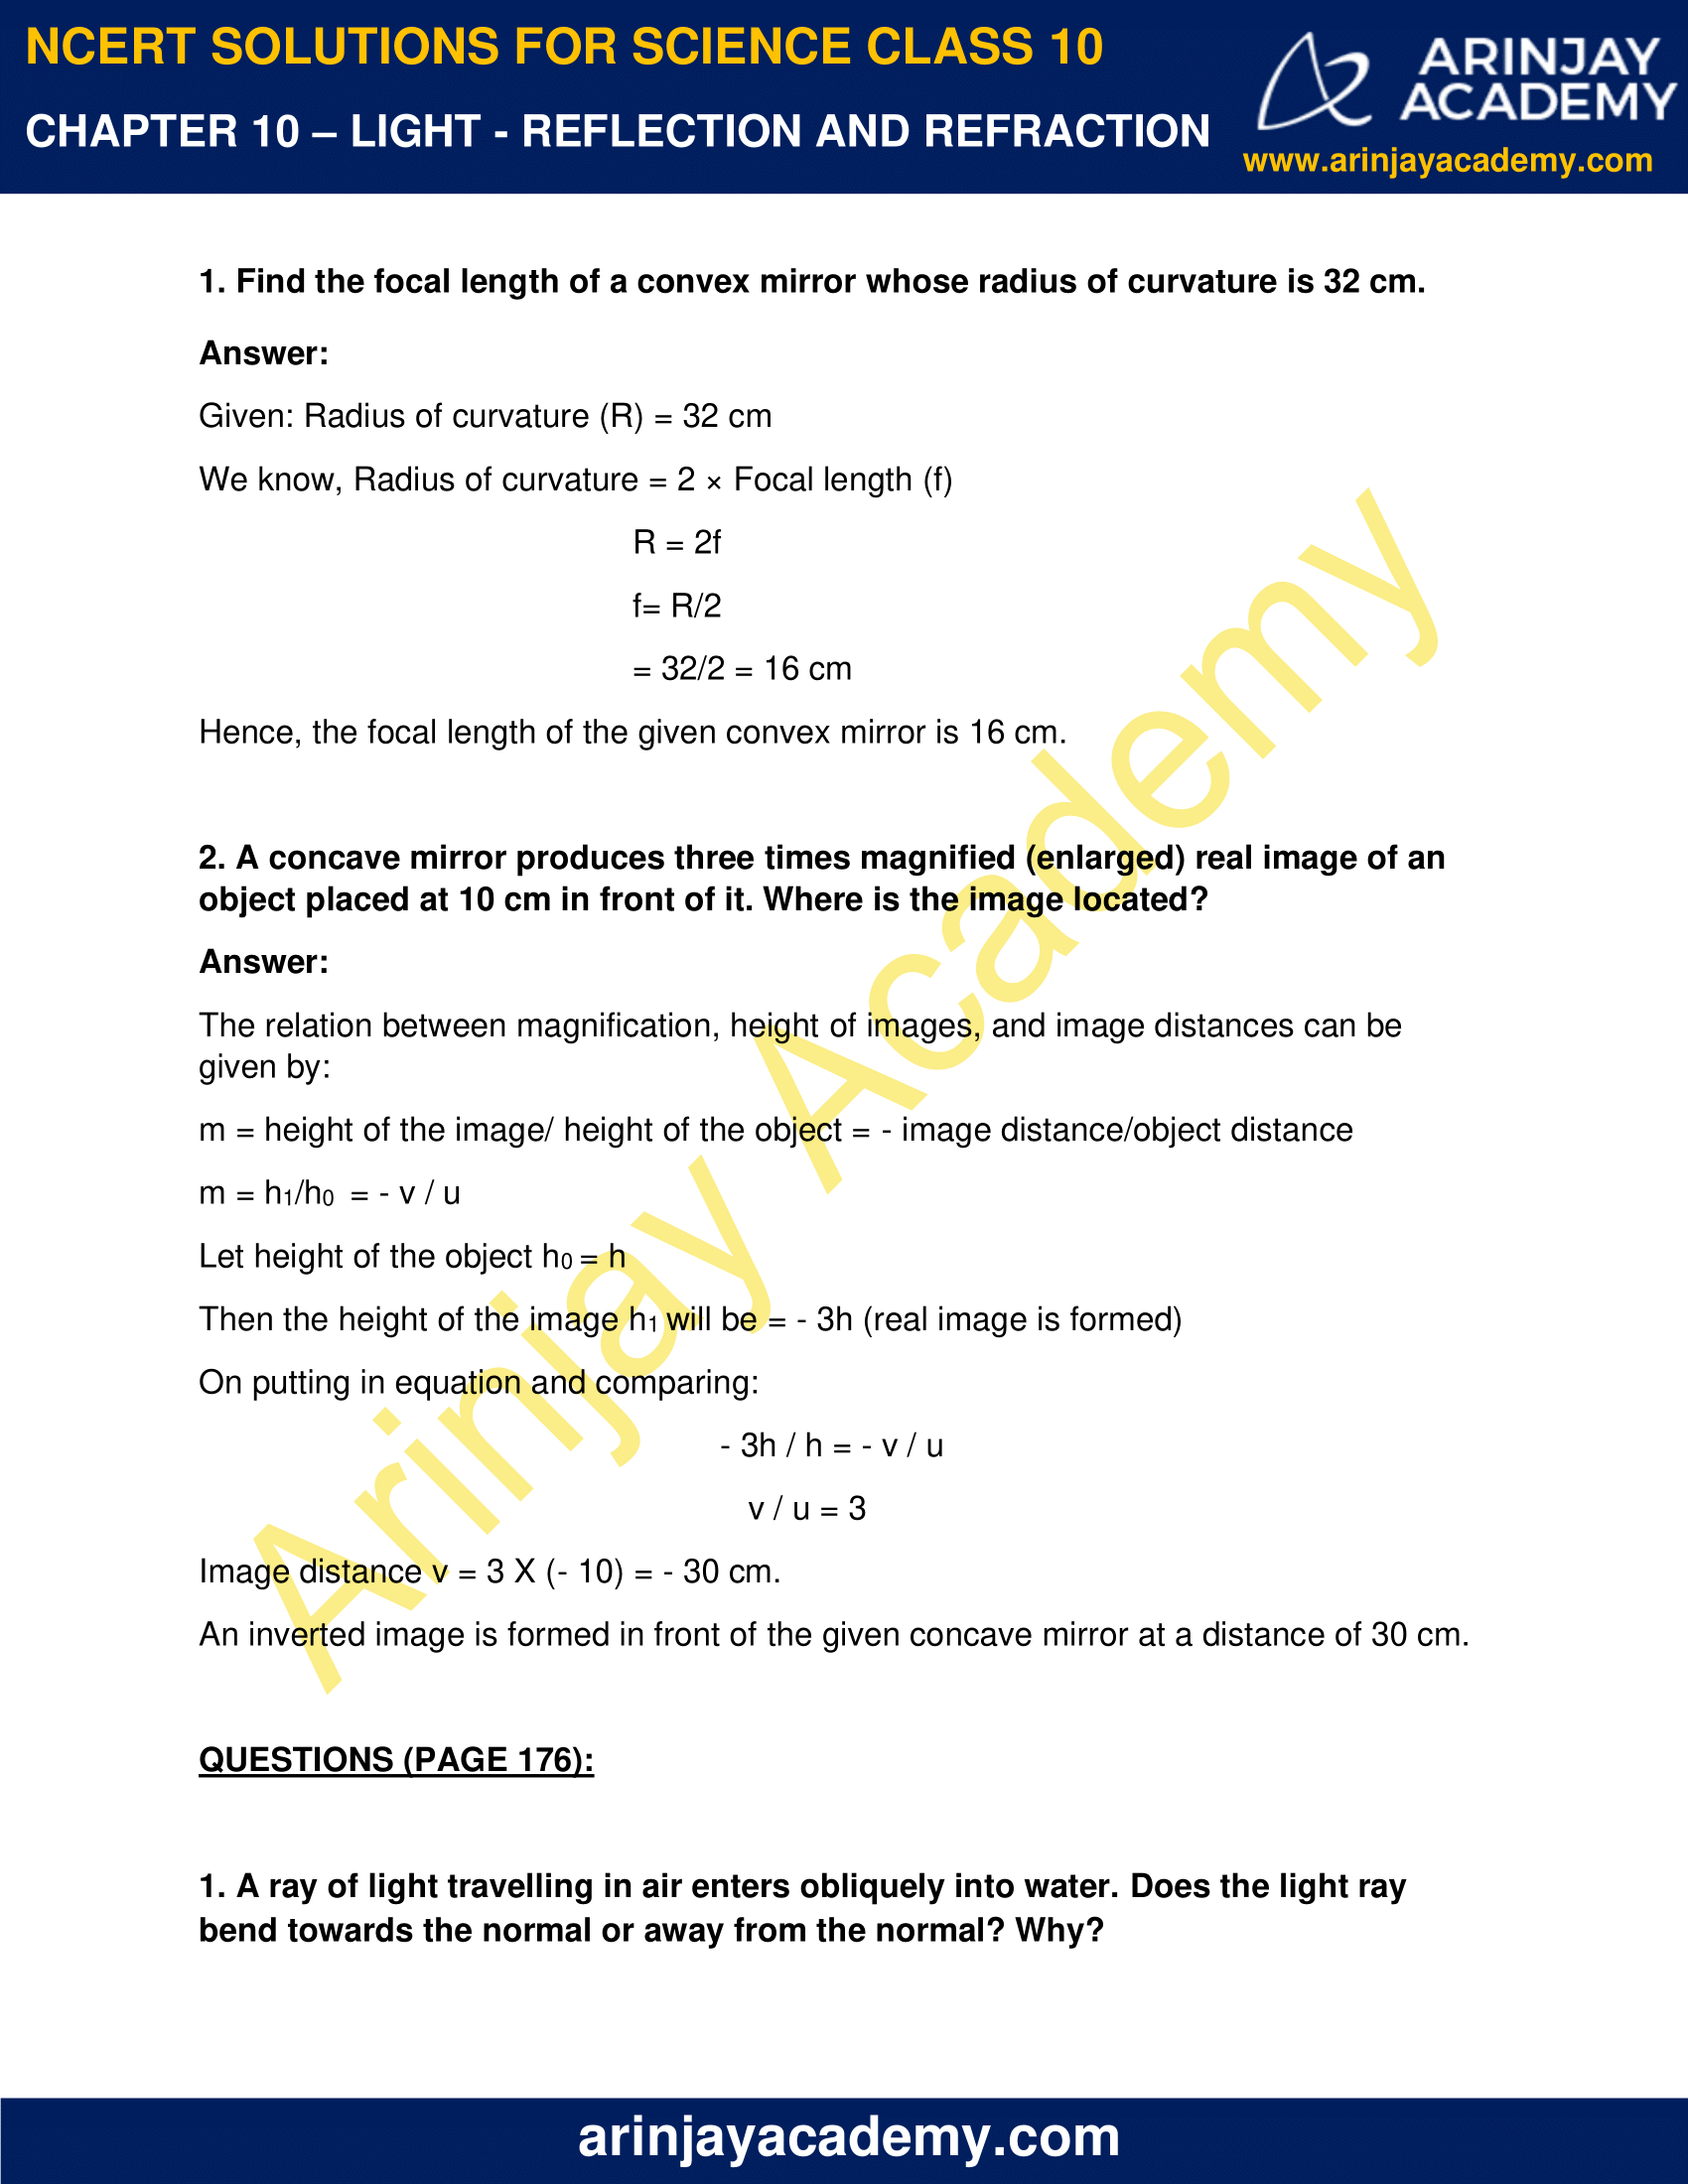 NCERT Solutions for Class 10 Science Chapter 10 image 2